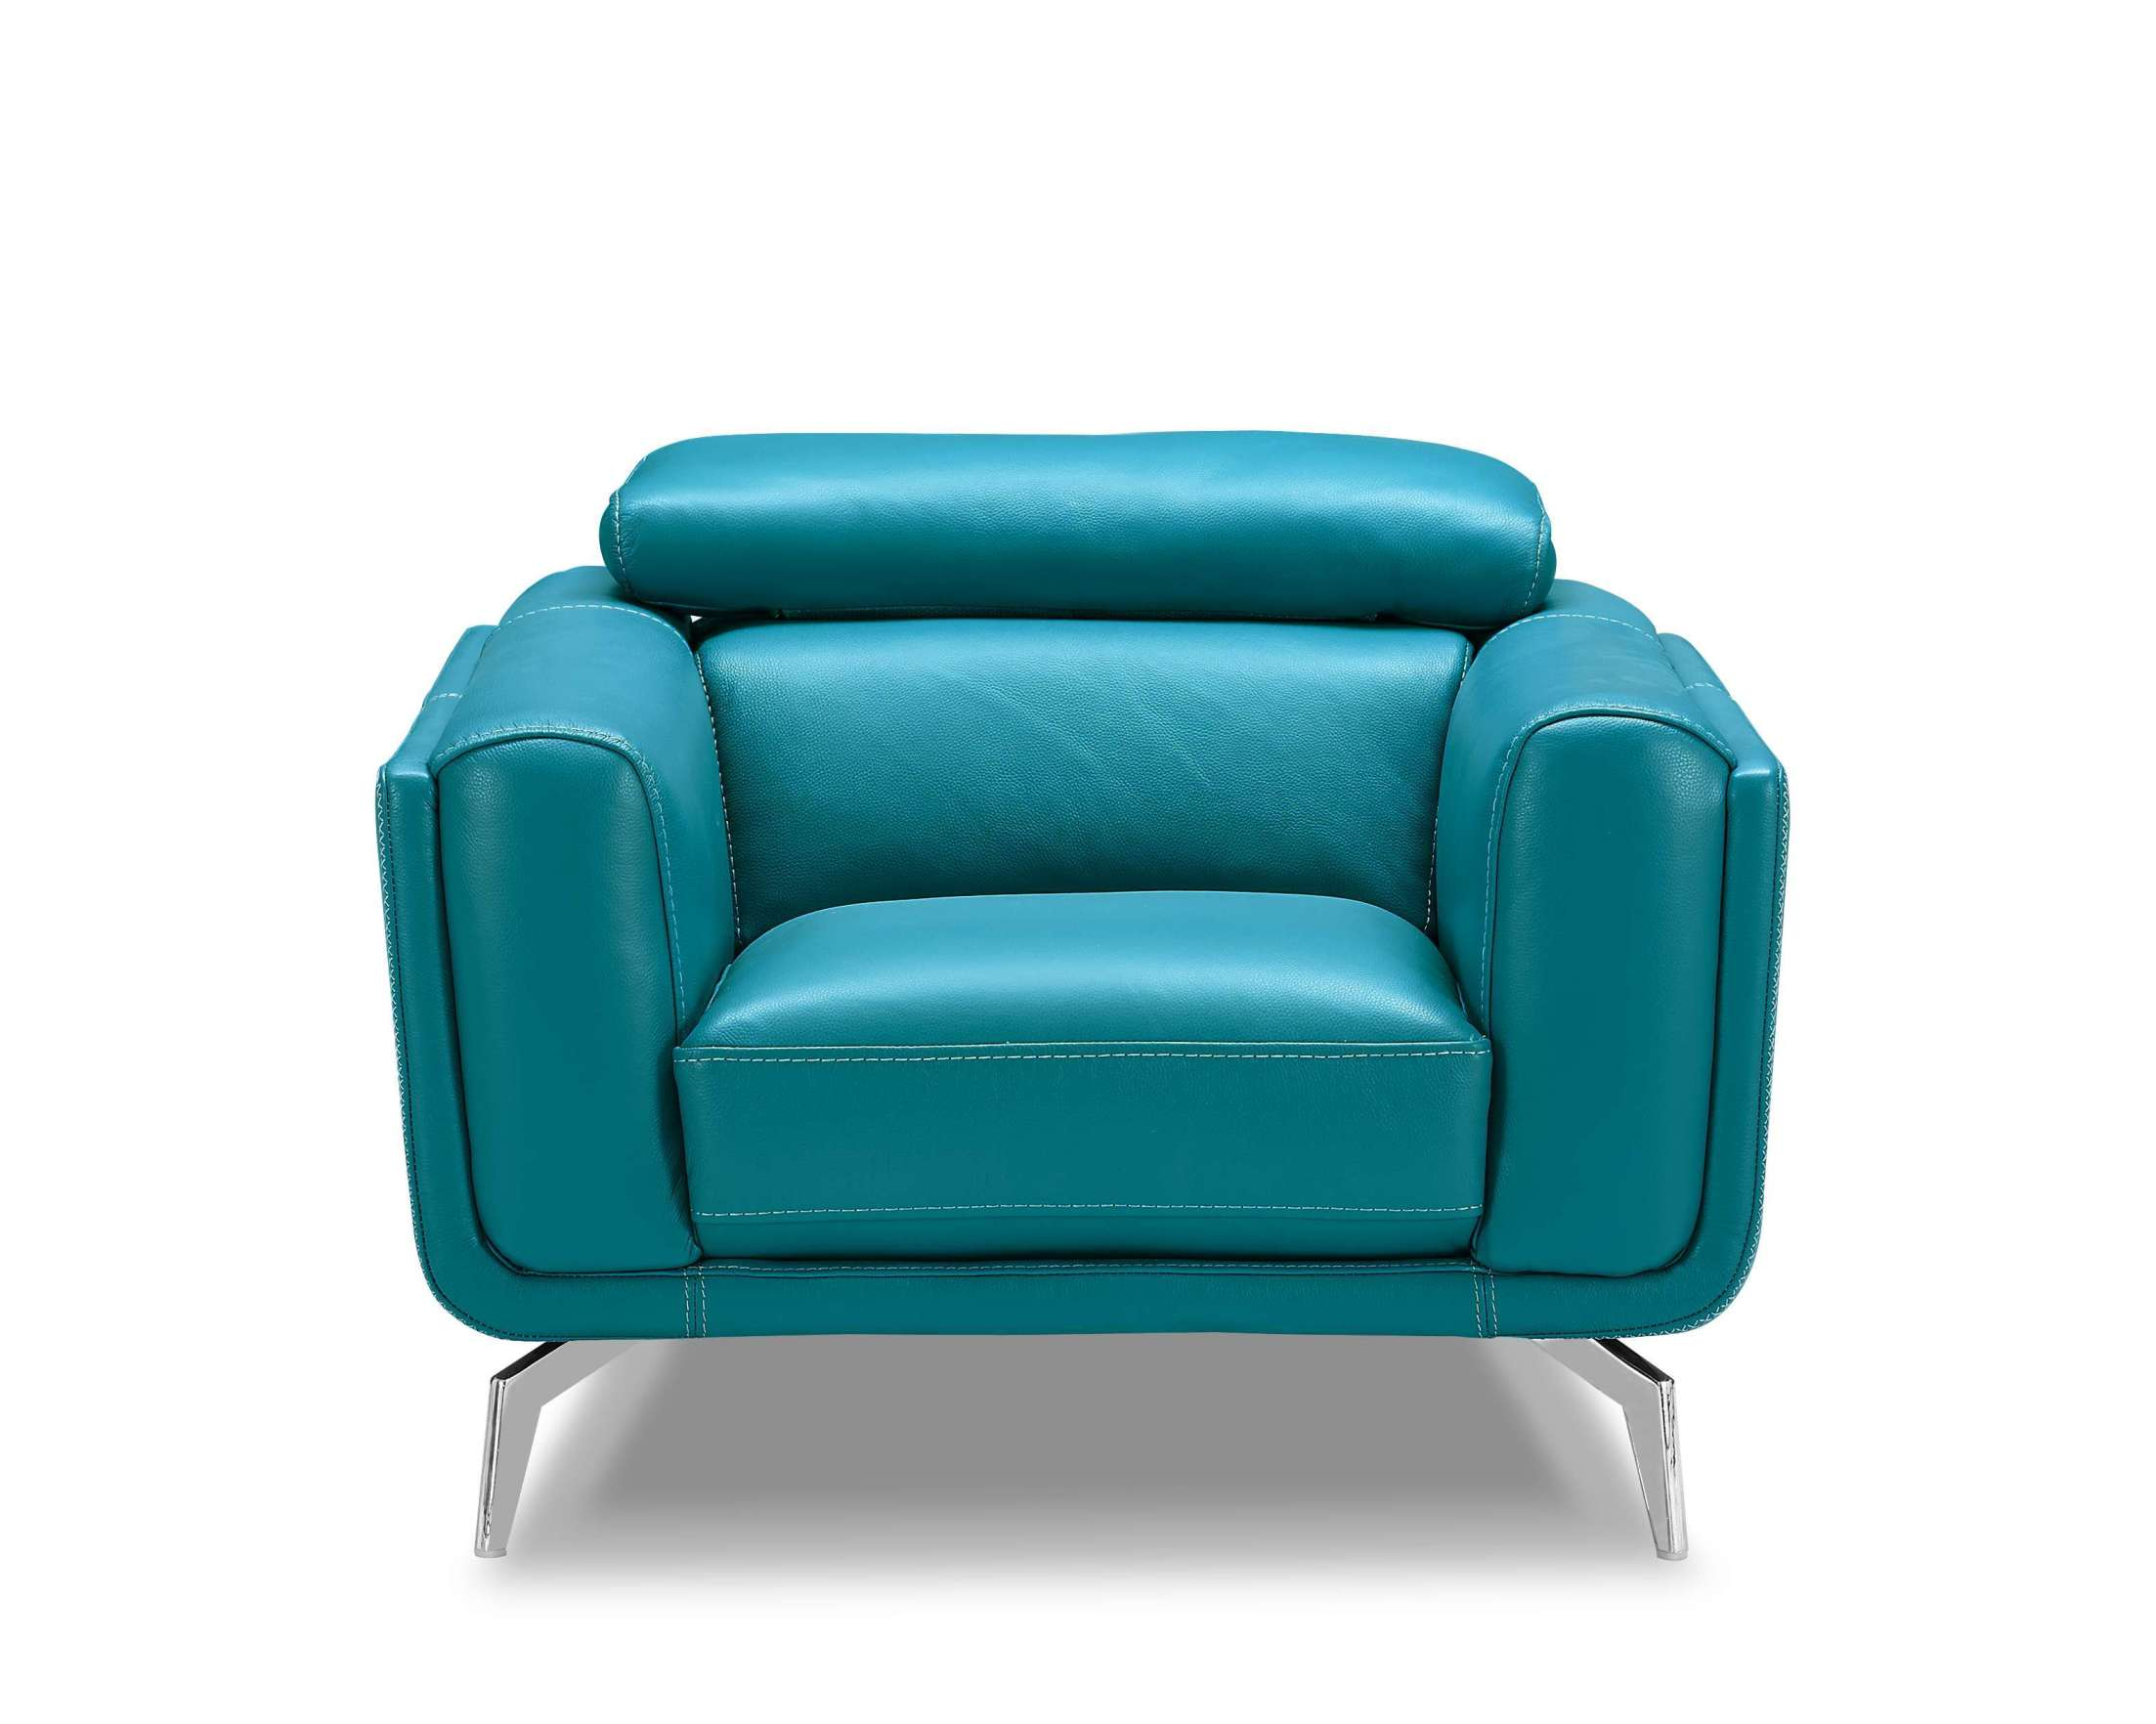 leather sofa furniture stores nyc backrest design adjustable blue sprint chair contemporary